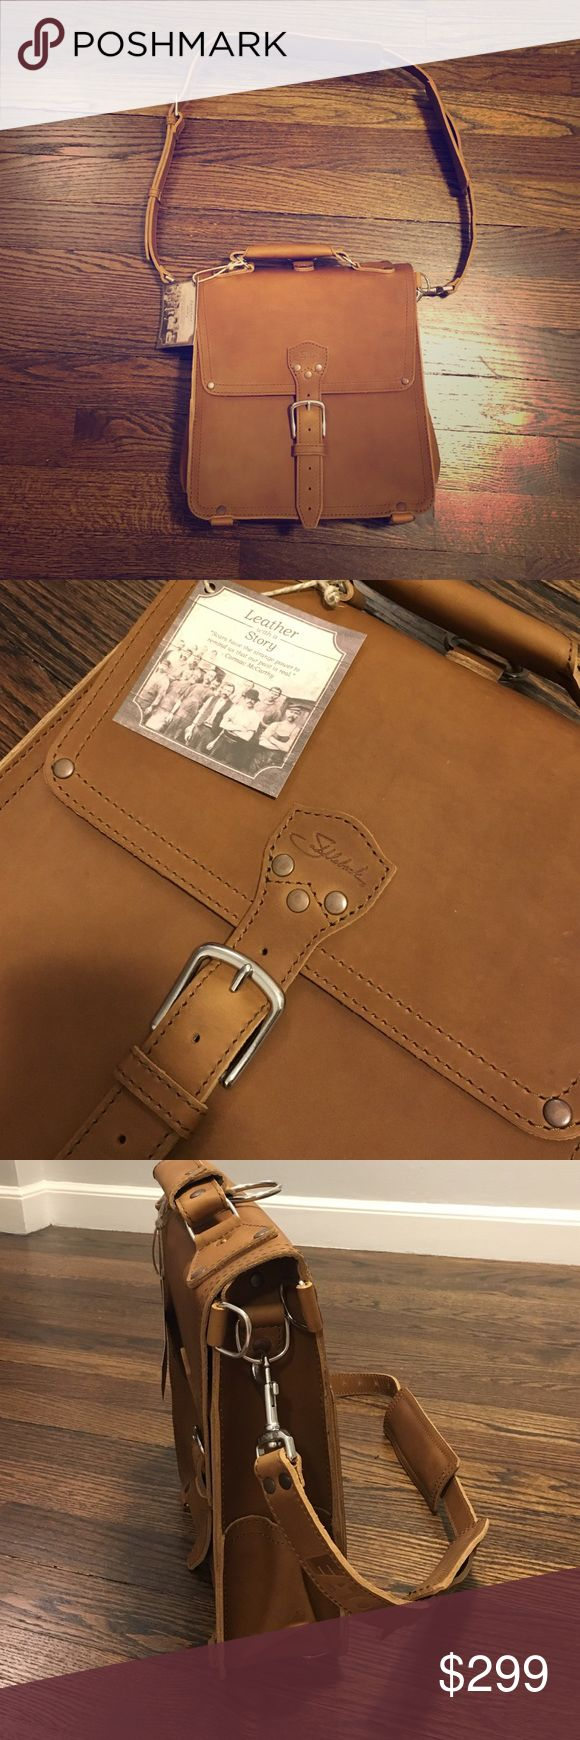 """NEW Saddleback Leather Messenger Bag 💼 Brand spanking new with tags!! Will break in beautifully.  Received as a gift and a company logo is blind stamped on the strap """"Eaton"""" - can be hidden with the strap pad or remove the strap all together and use as a backpack, it converts! Open interior (no divider) for maximum storage capacity 3 exterior pockets / 2 interior pockets  Adjustable strap length: 34 ½"""" - 59 ¼"""" Exterior: 12 ¾"""" W x 14 ½"""" H x 4 ¼"""" D Interior: 12 ½"""" W x 14"""" H x 4"""" D Holds up to…"""